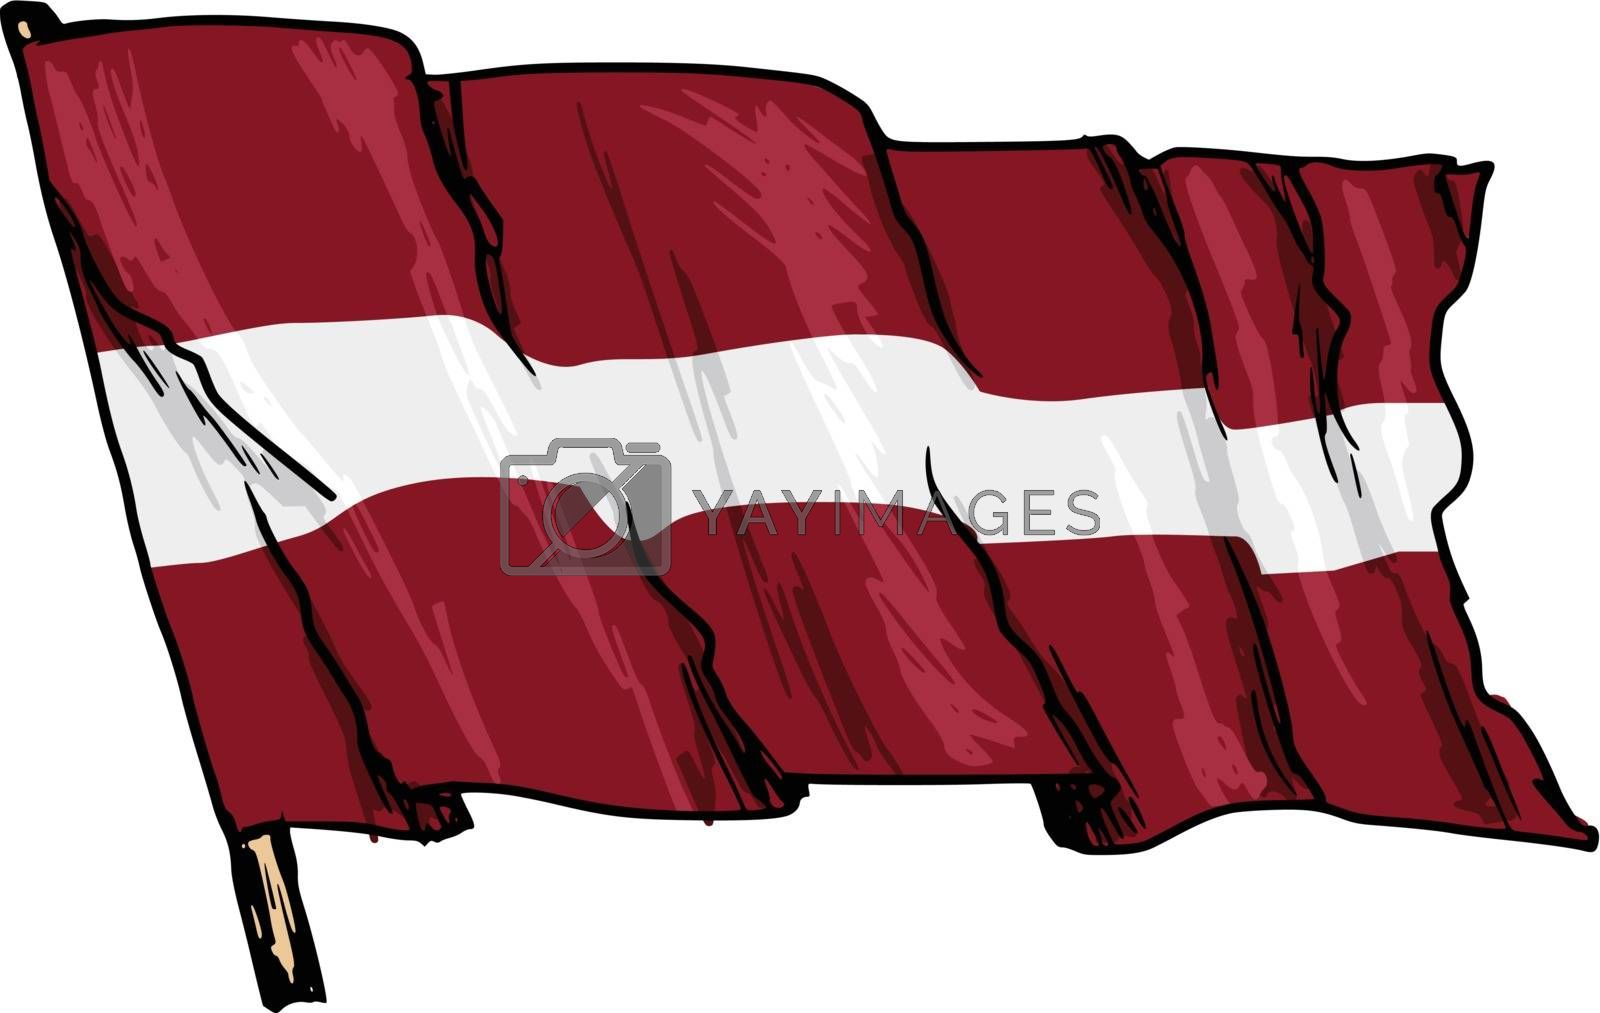 flag of Latvia by Perysty